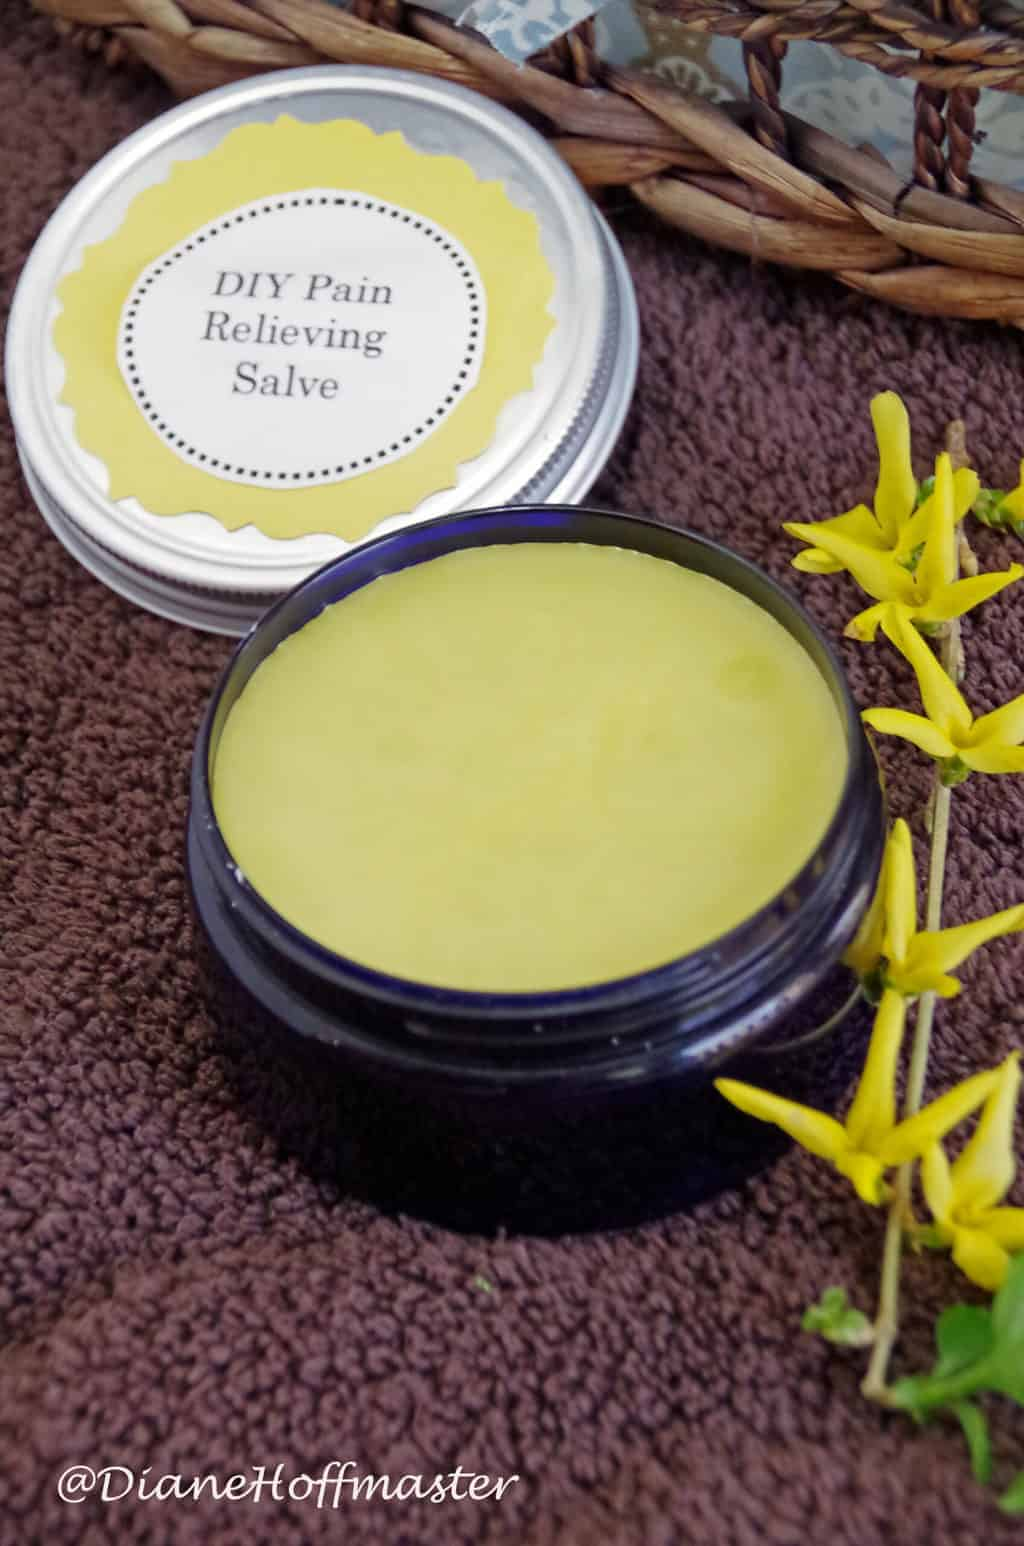 All Natural #DIY Pain Relieving Salve for Sore Muscles